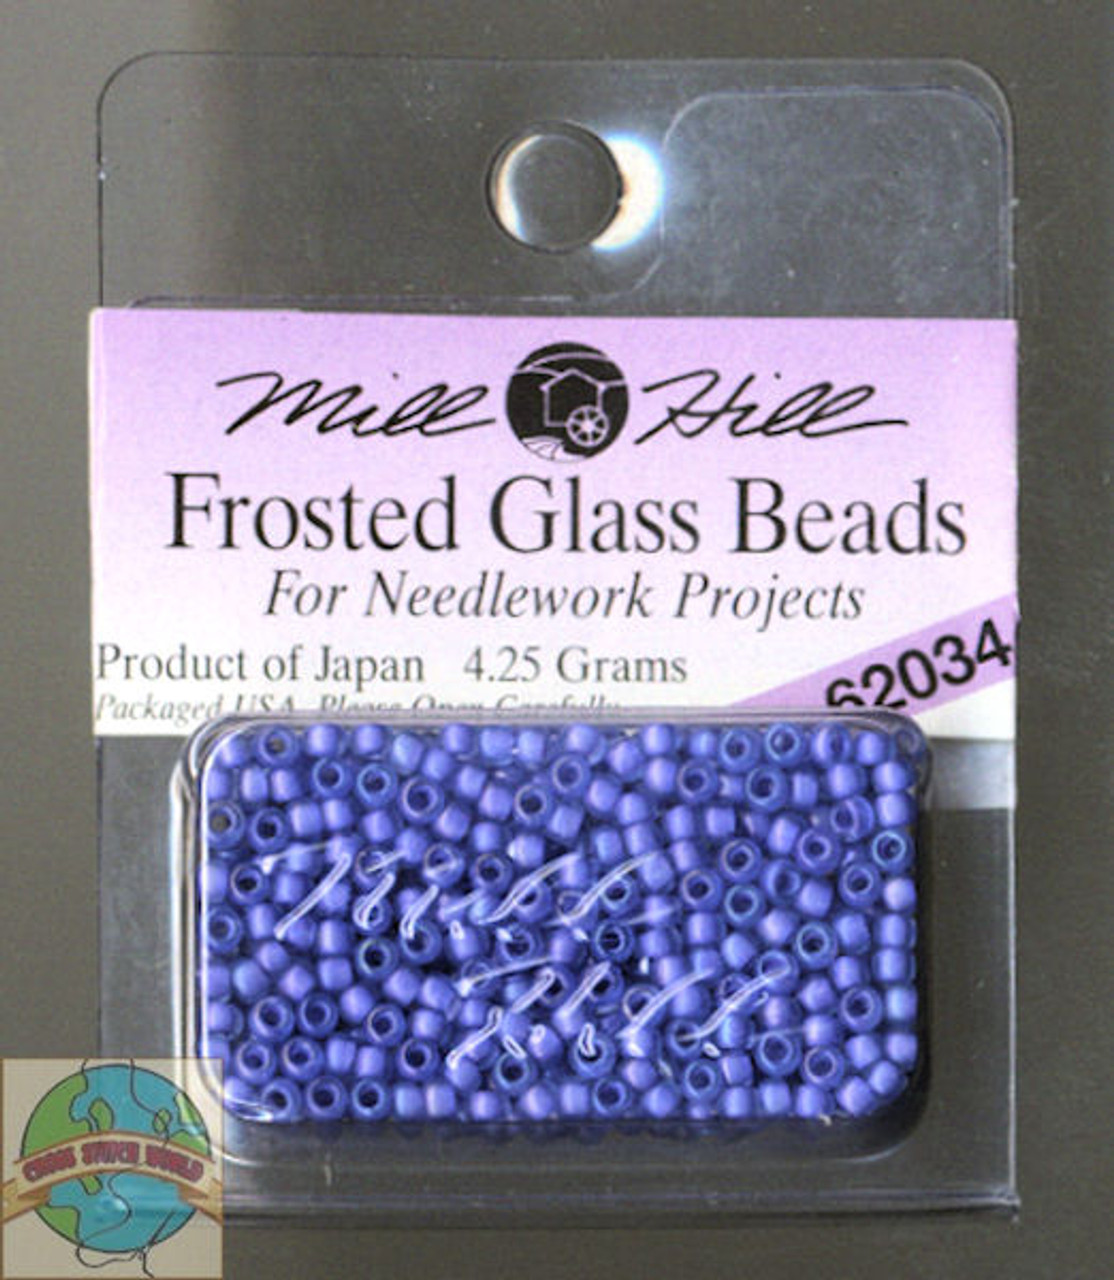 Mill Hill Frosted Glass Seed Beads 4.25g Blue Violet #62034